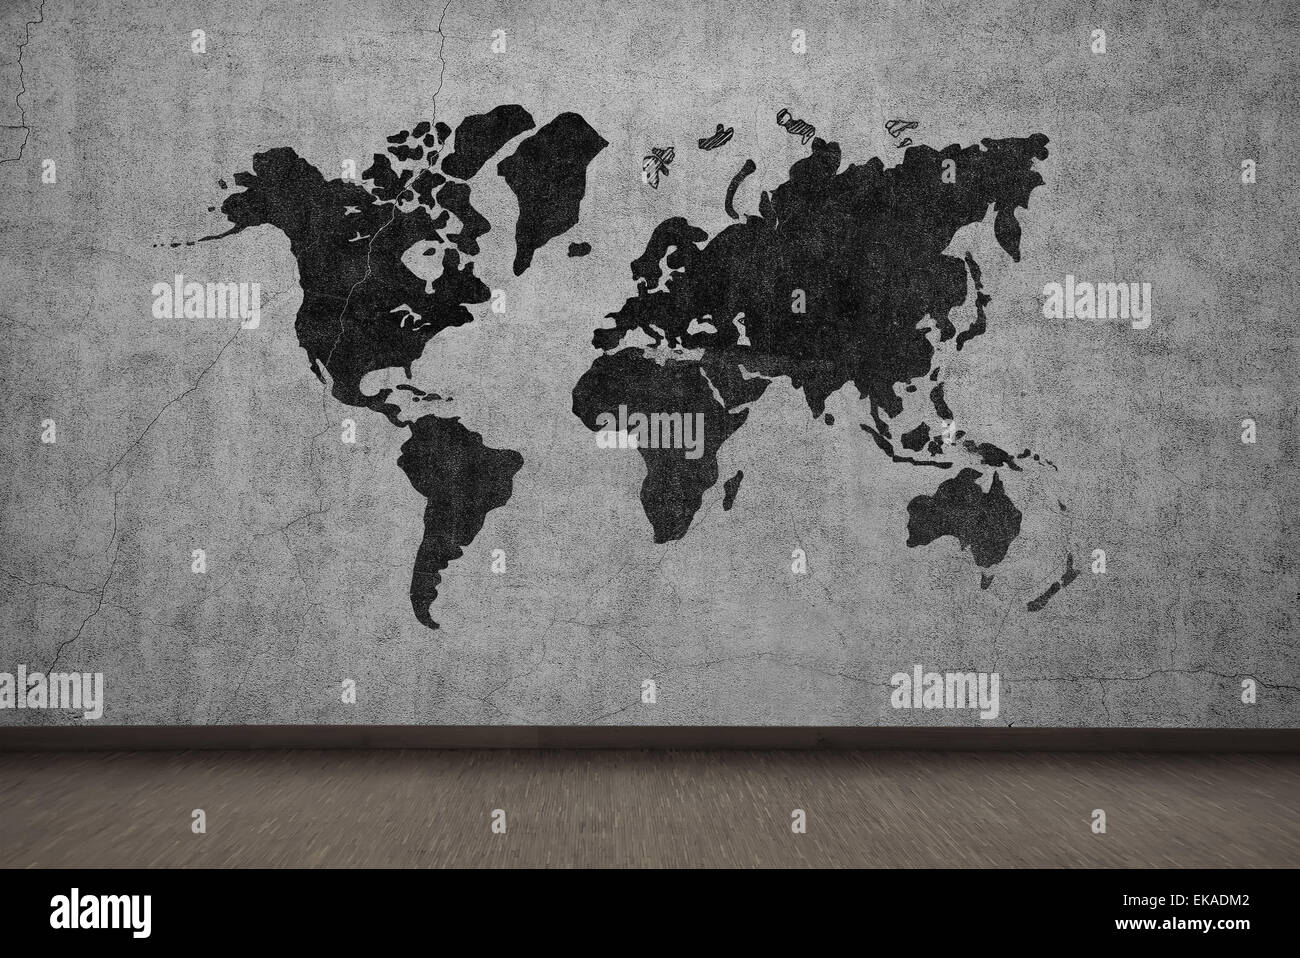 Drawing world map on gray concrete wall stock photo 80750210 alamy drawing world map on gray concrete wall gumiabroncs Gallery